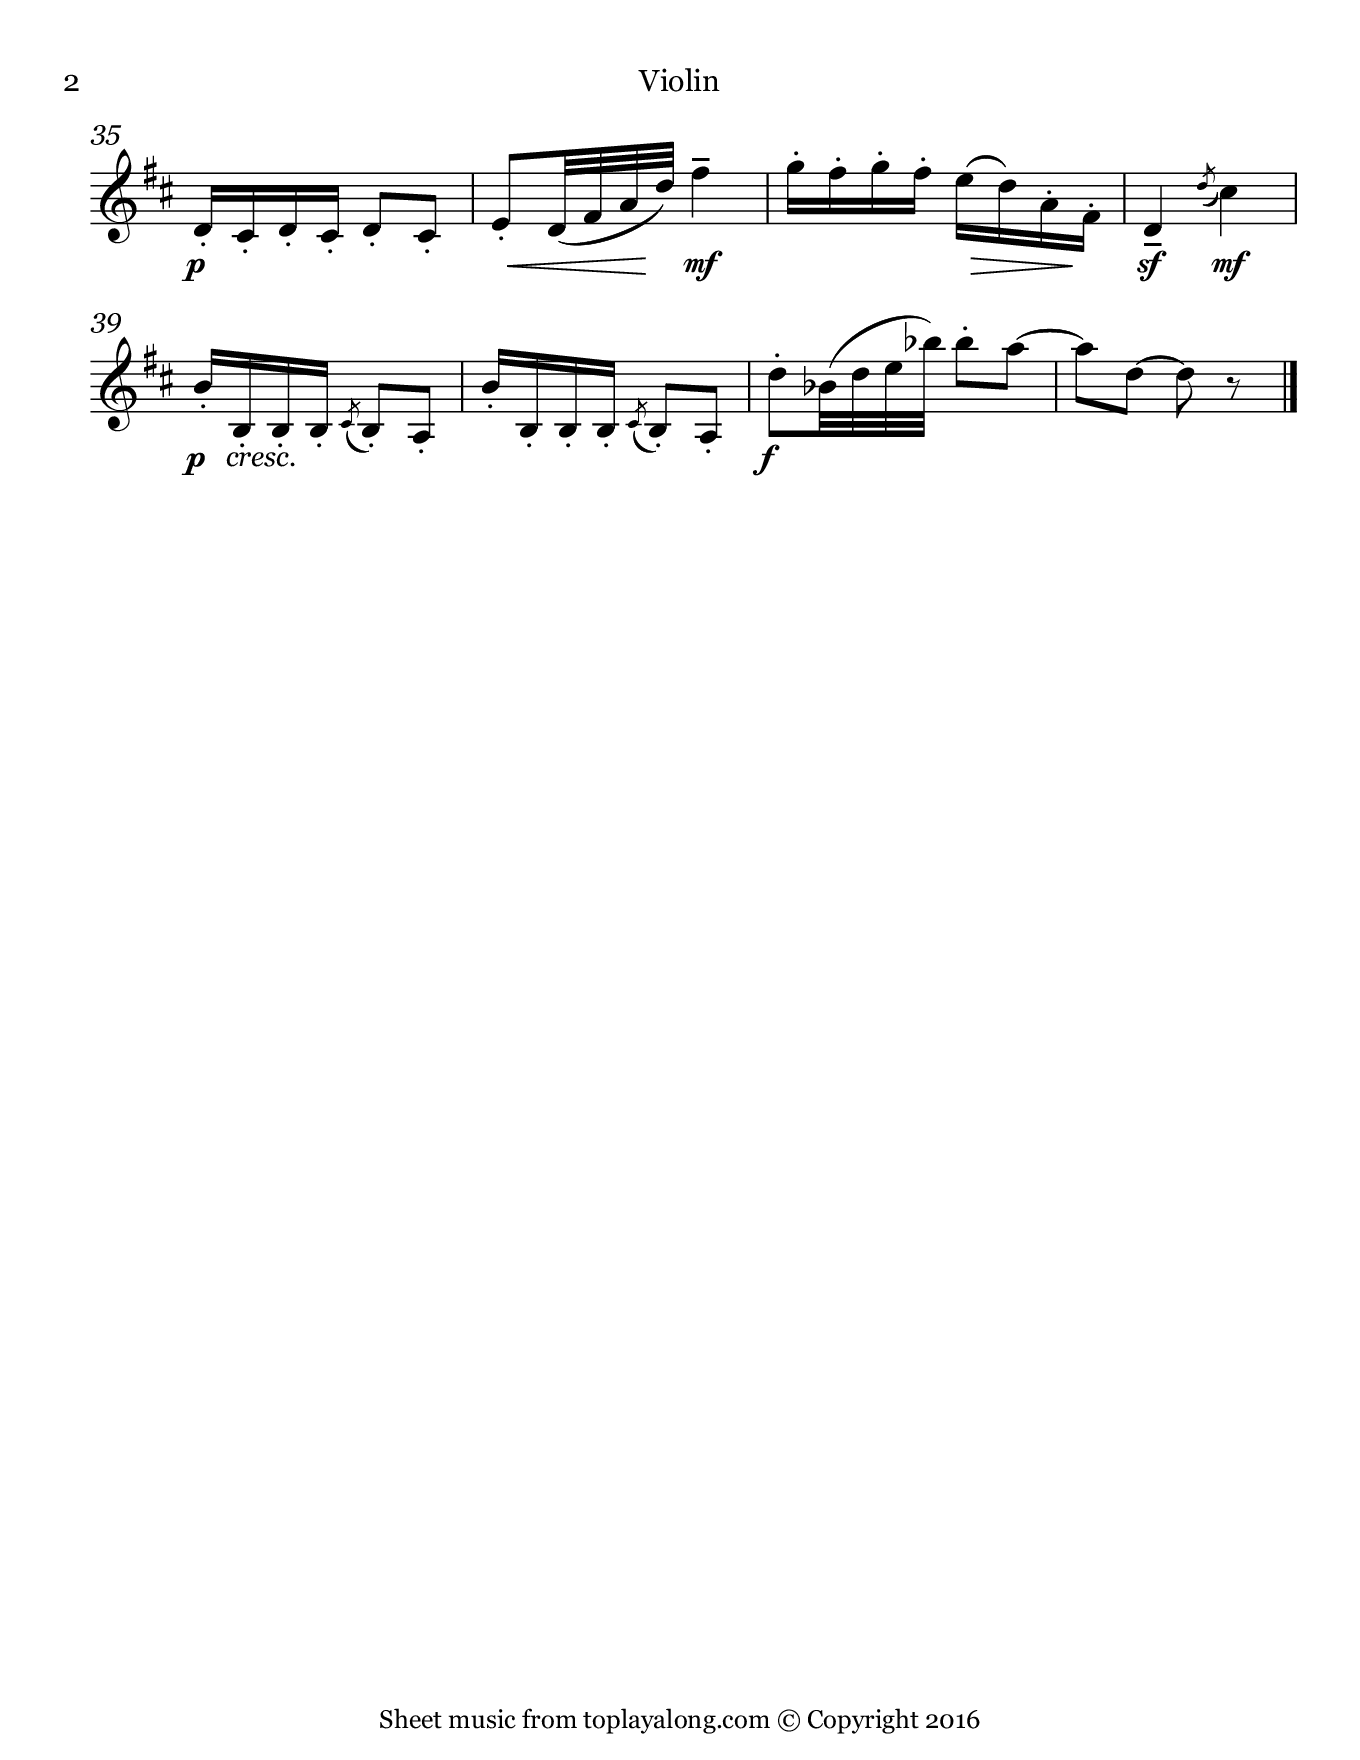 Dance of the Mirlitons from The Nutcracker by Tchaikovsky. Sheet music for Violin, page 2.